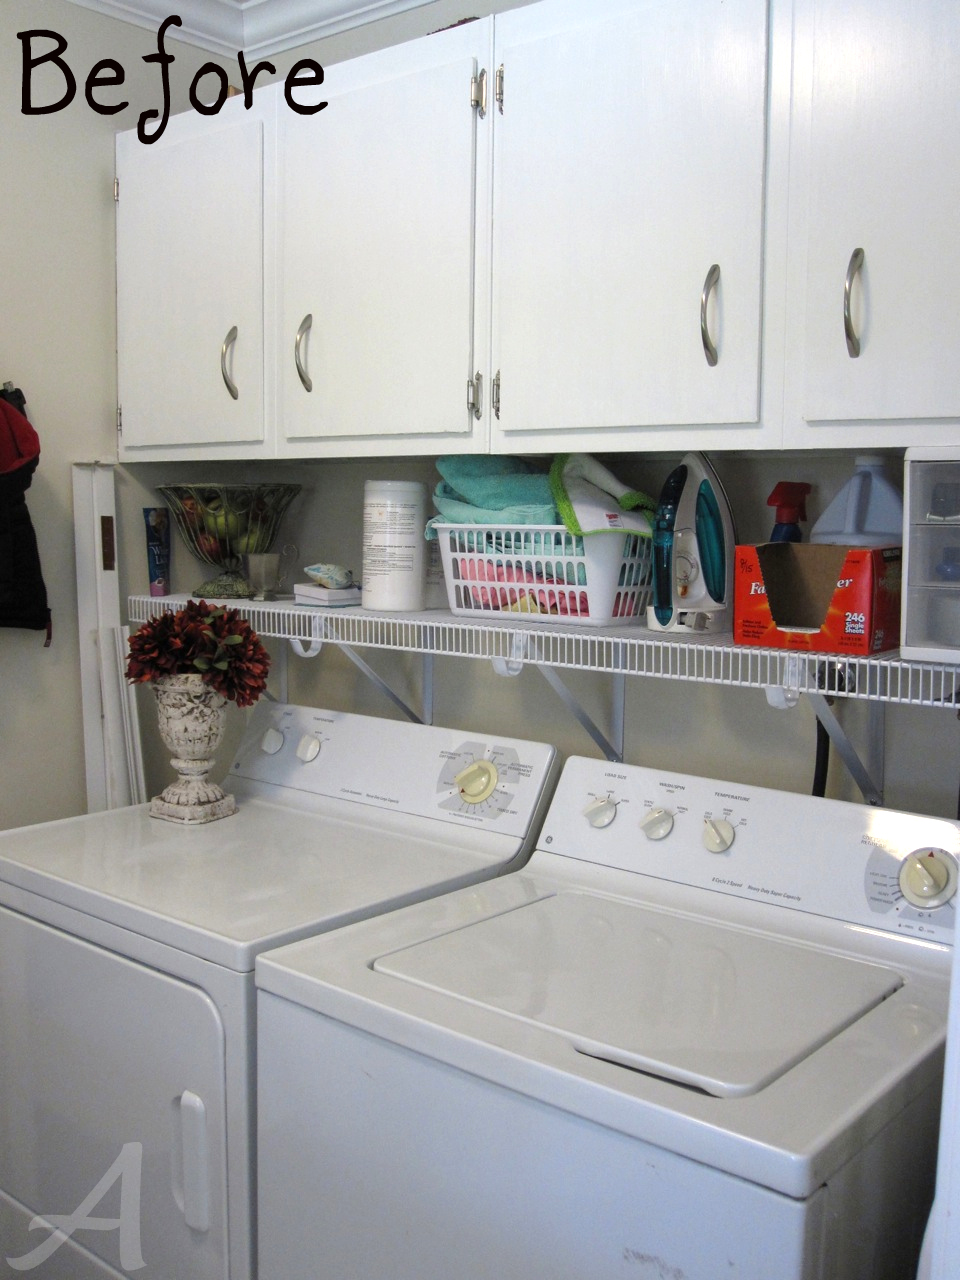 Getting Organized The Laundry Room tips and tricks